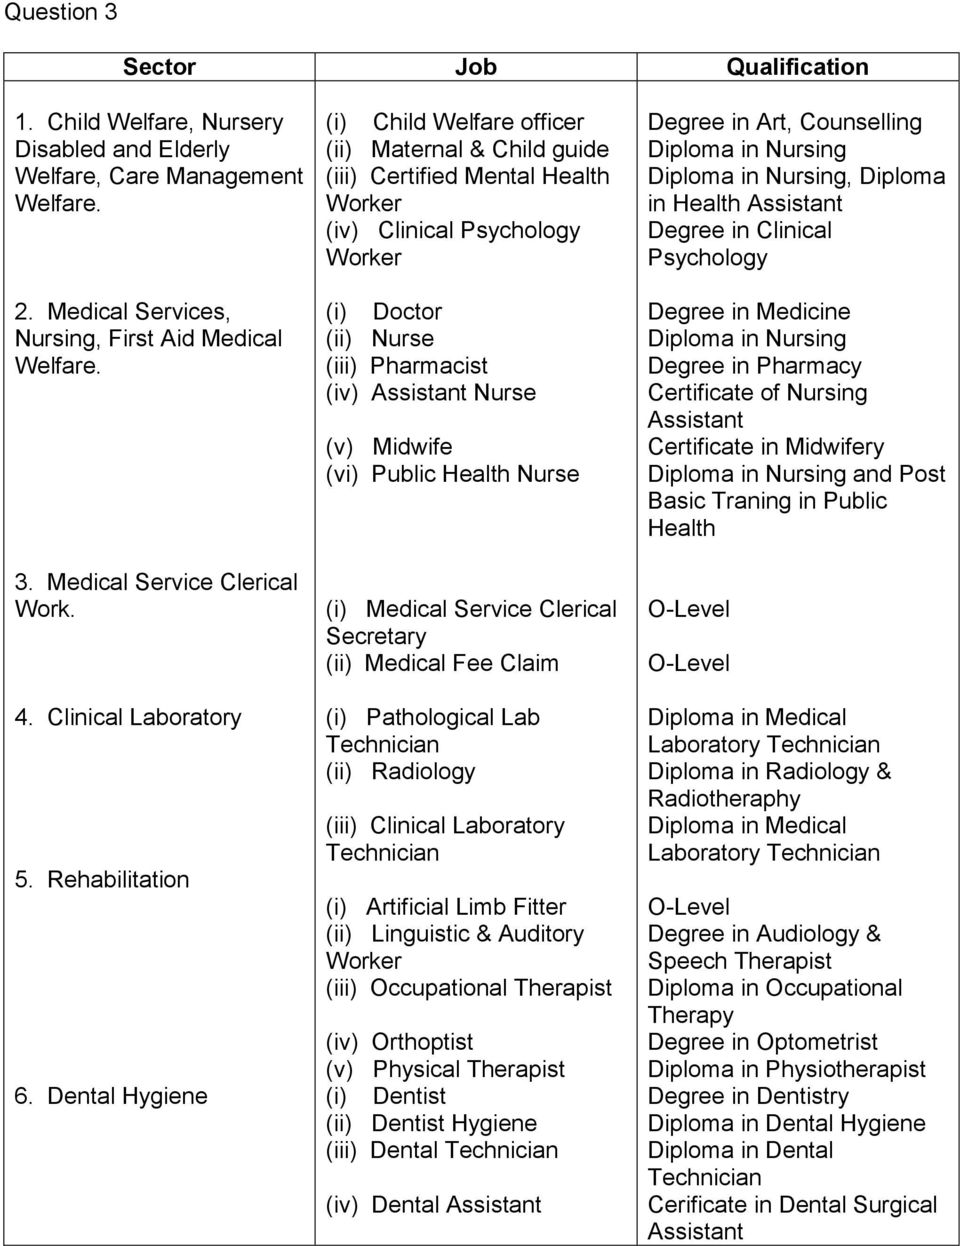 Dental Hygiene Child Welfare officer Maternal & Child guide Certified Mental Health Worker (iv) Clinical Psychology Worker Doctor Nurse Pharmacist (iv) Nurse (v) Midwife (vi) Public Health Nurse